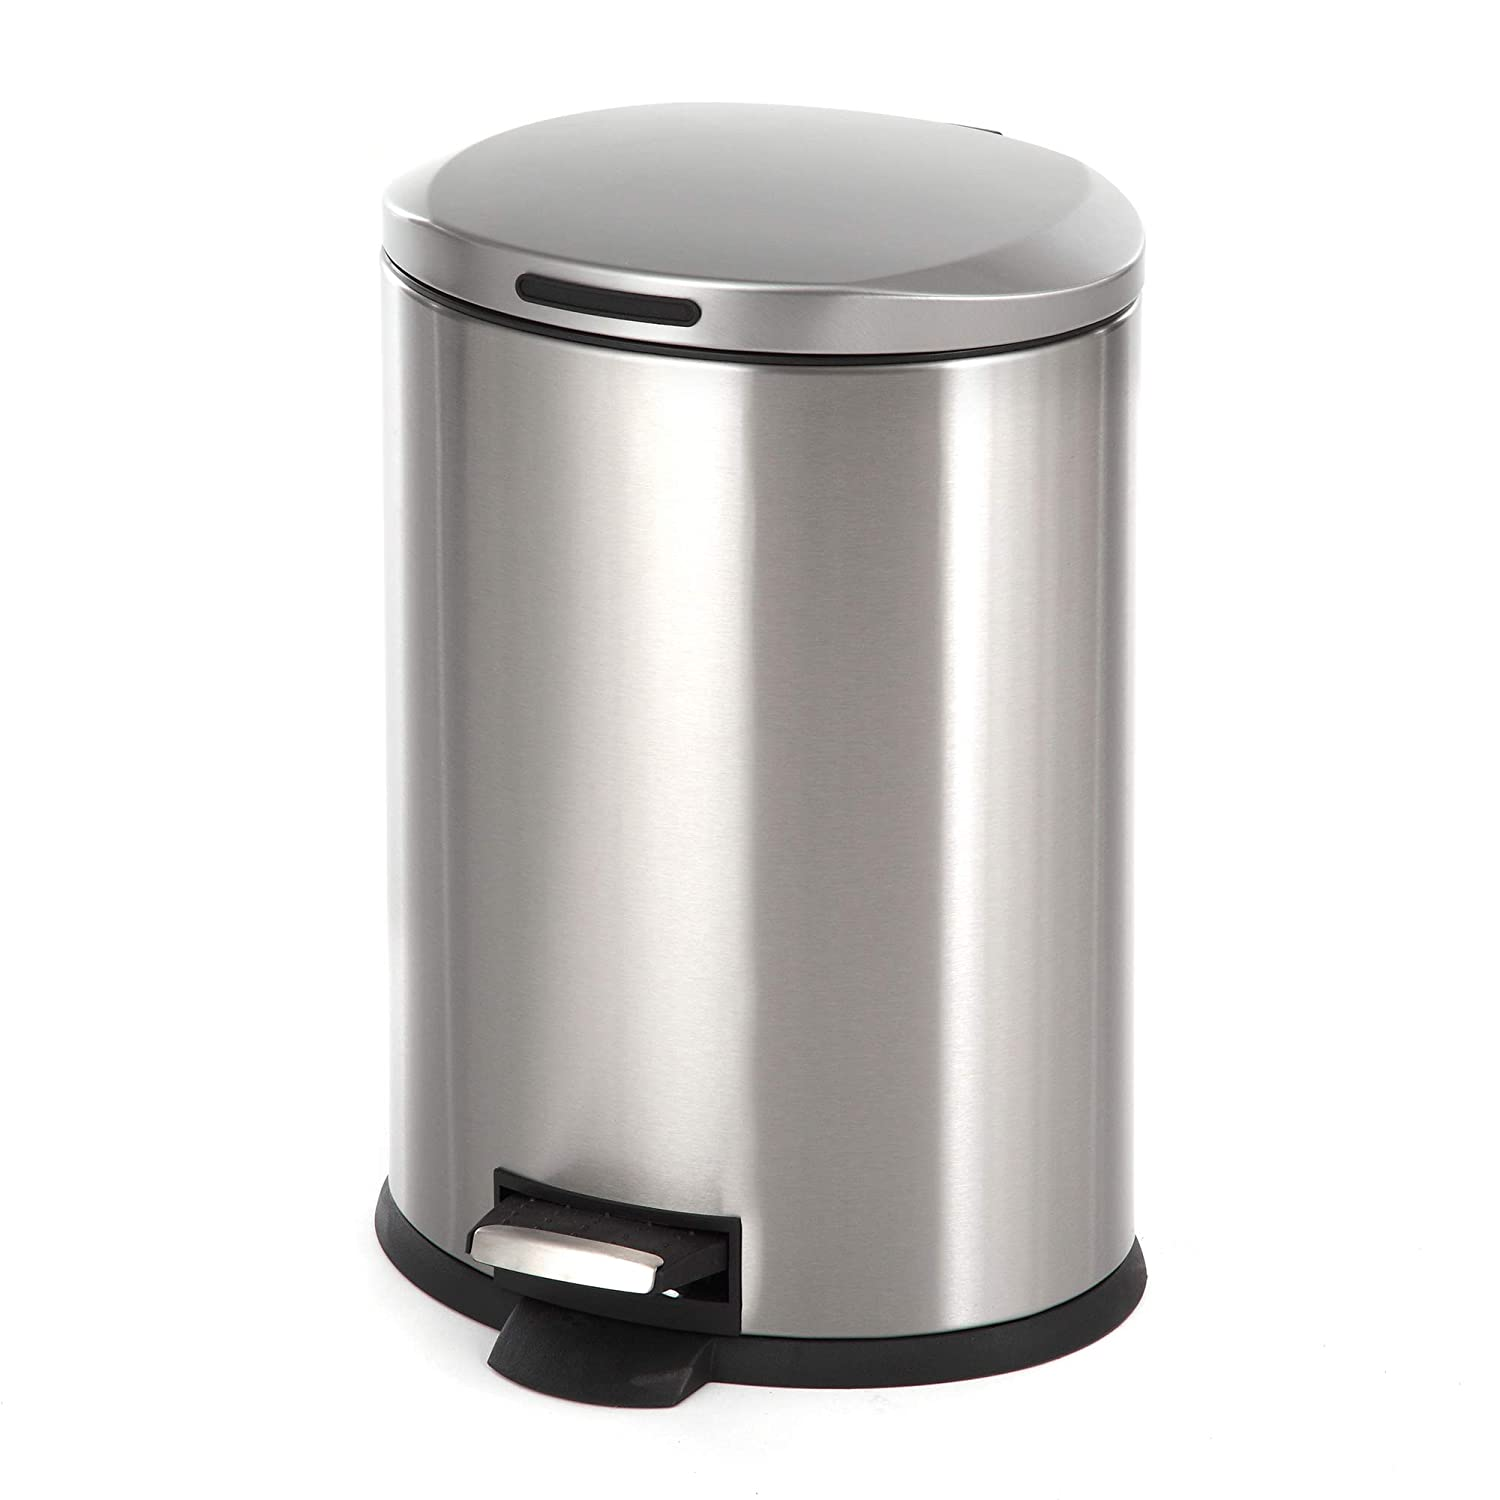 Home Zone Stainless Steel Kitchen Trash Can With Oval Design And Step Pedal 12 Liter 3 Gallon Storage With Removable Plastic Trash Bin Liner